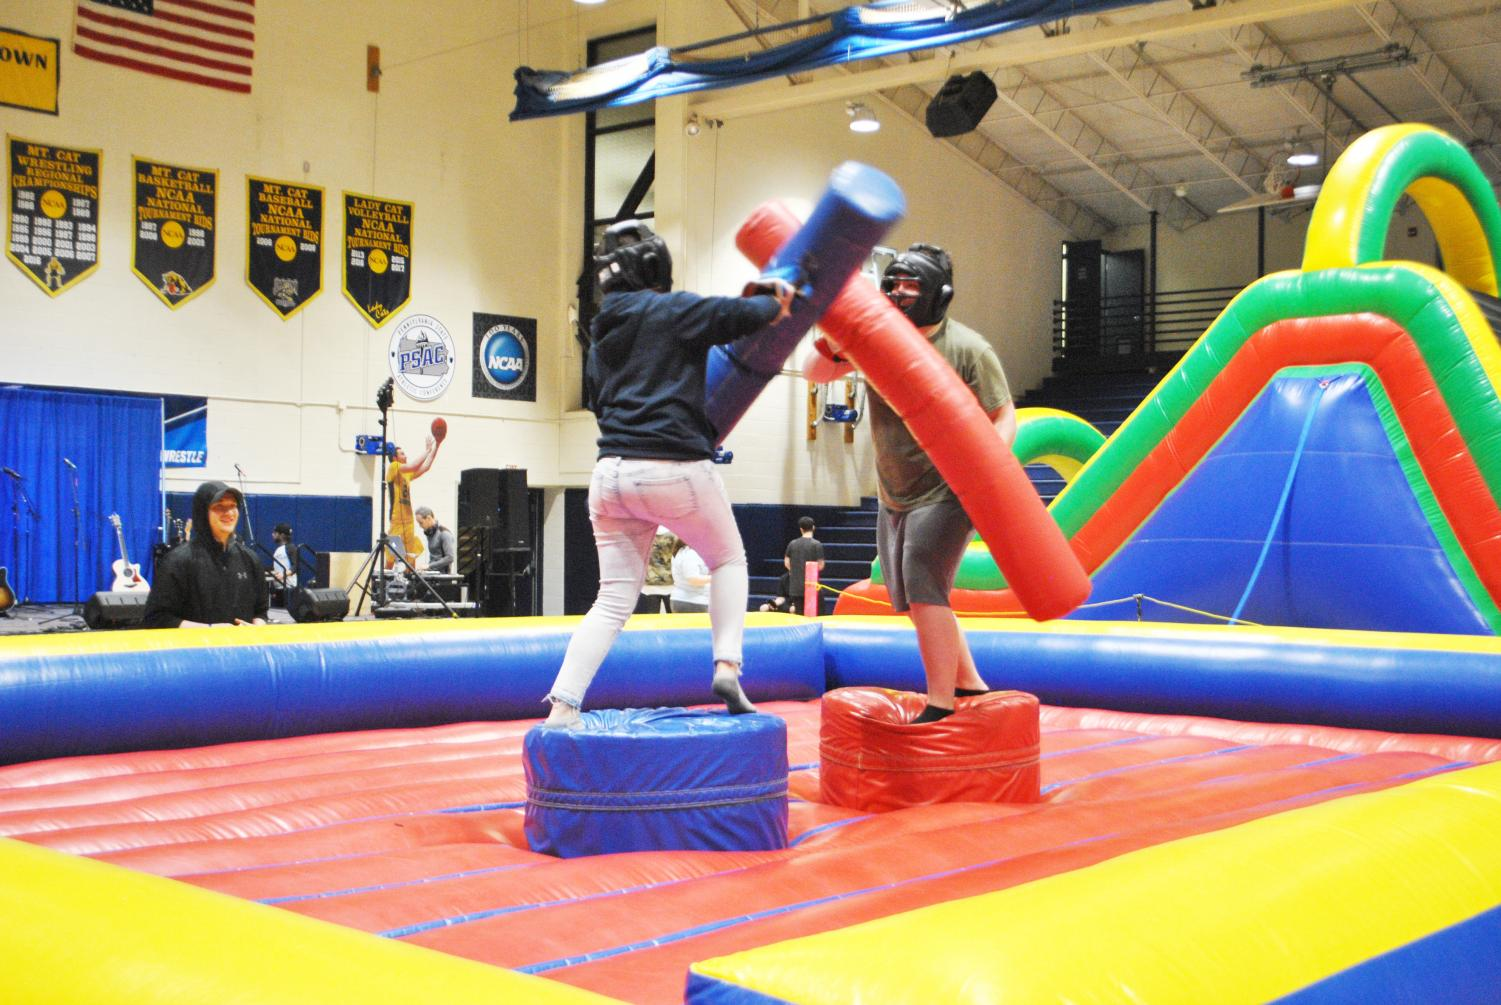 Junior Kayla Johnson and senior Patrick Thomas competed in an inflatable combat arena Friday at Program Board's block party.